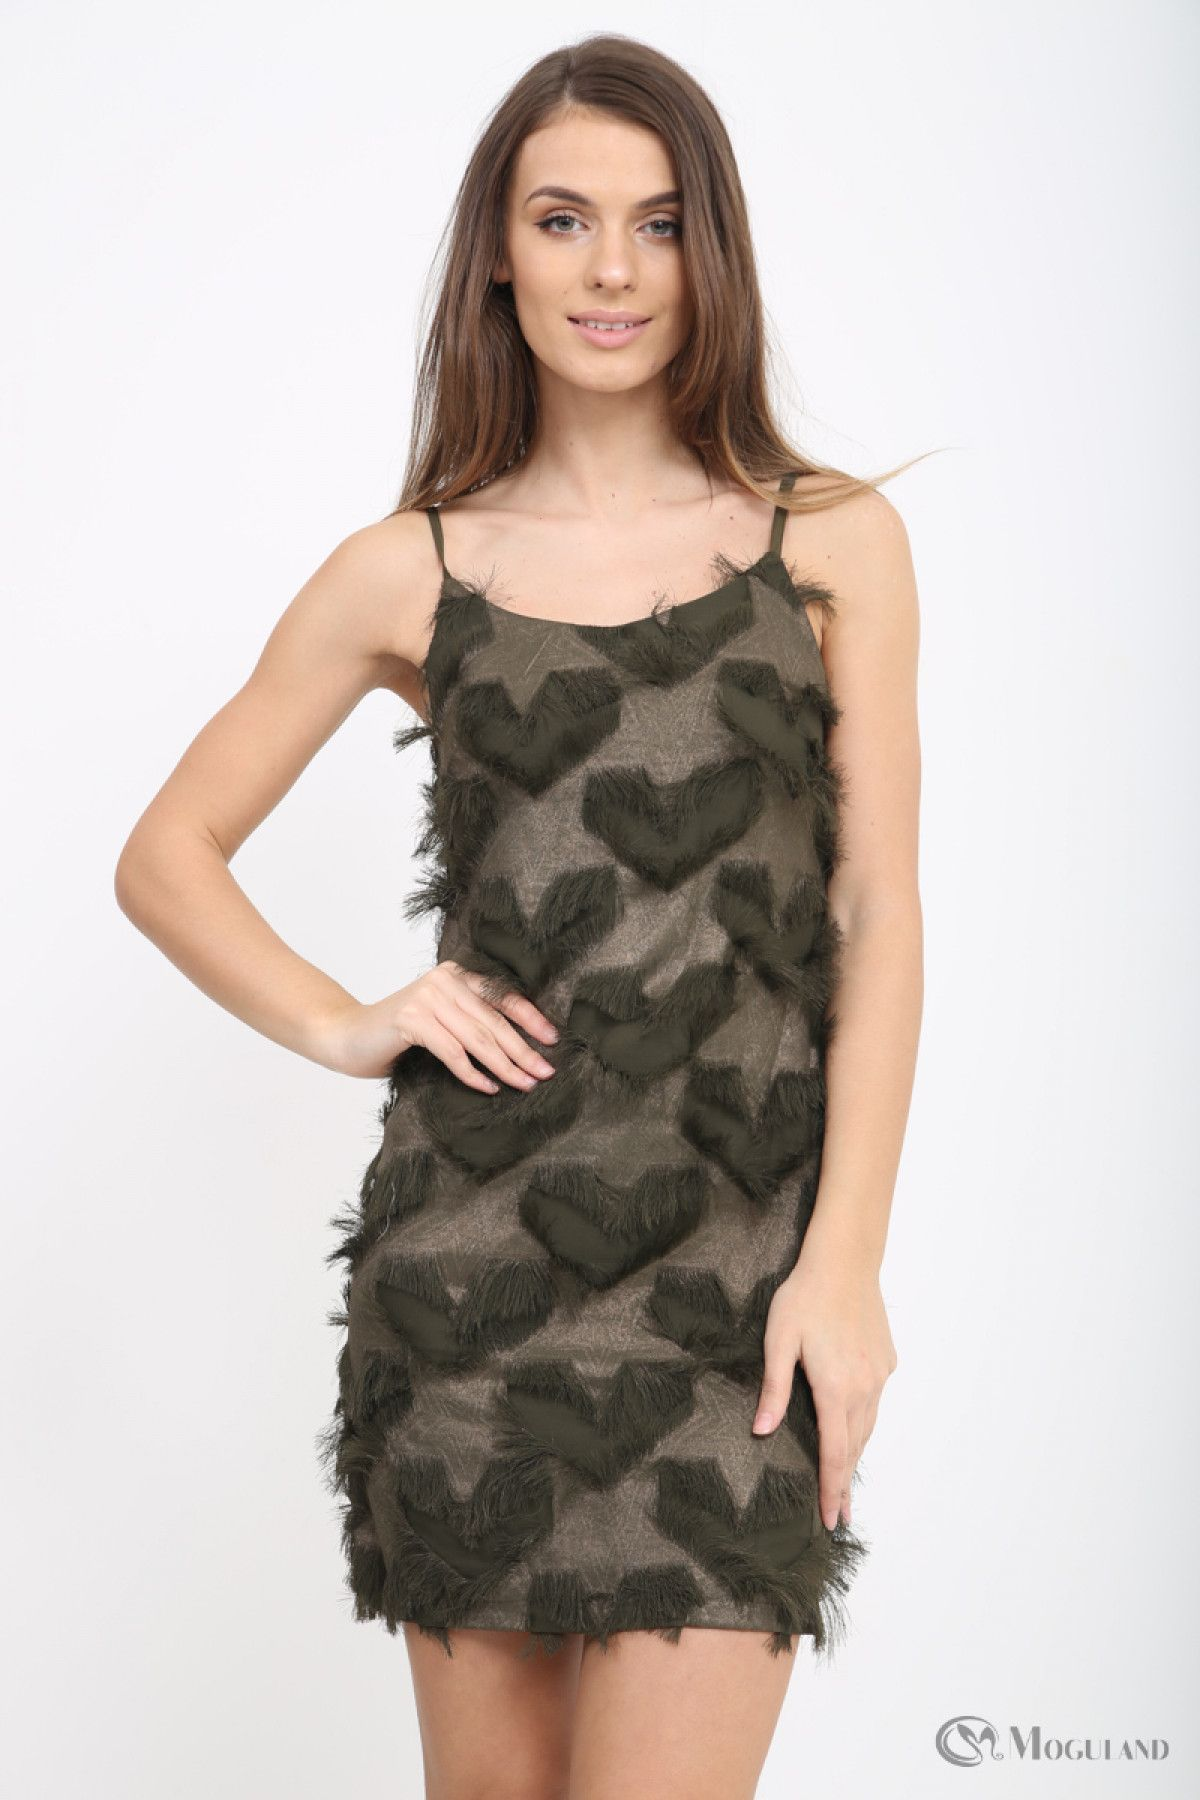 a2ace67919 Ladies khaki textured strappy dress wholesale - Women s Wholesale Clothing  Supplier